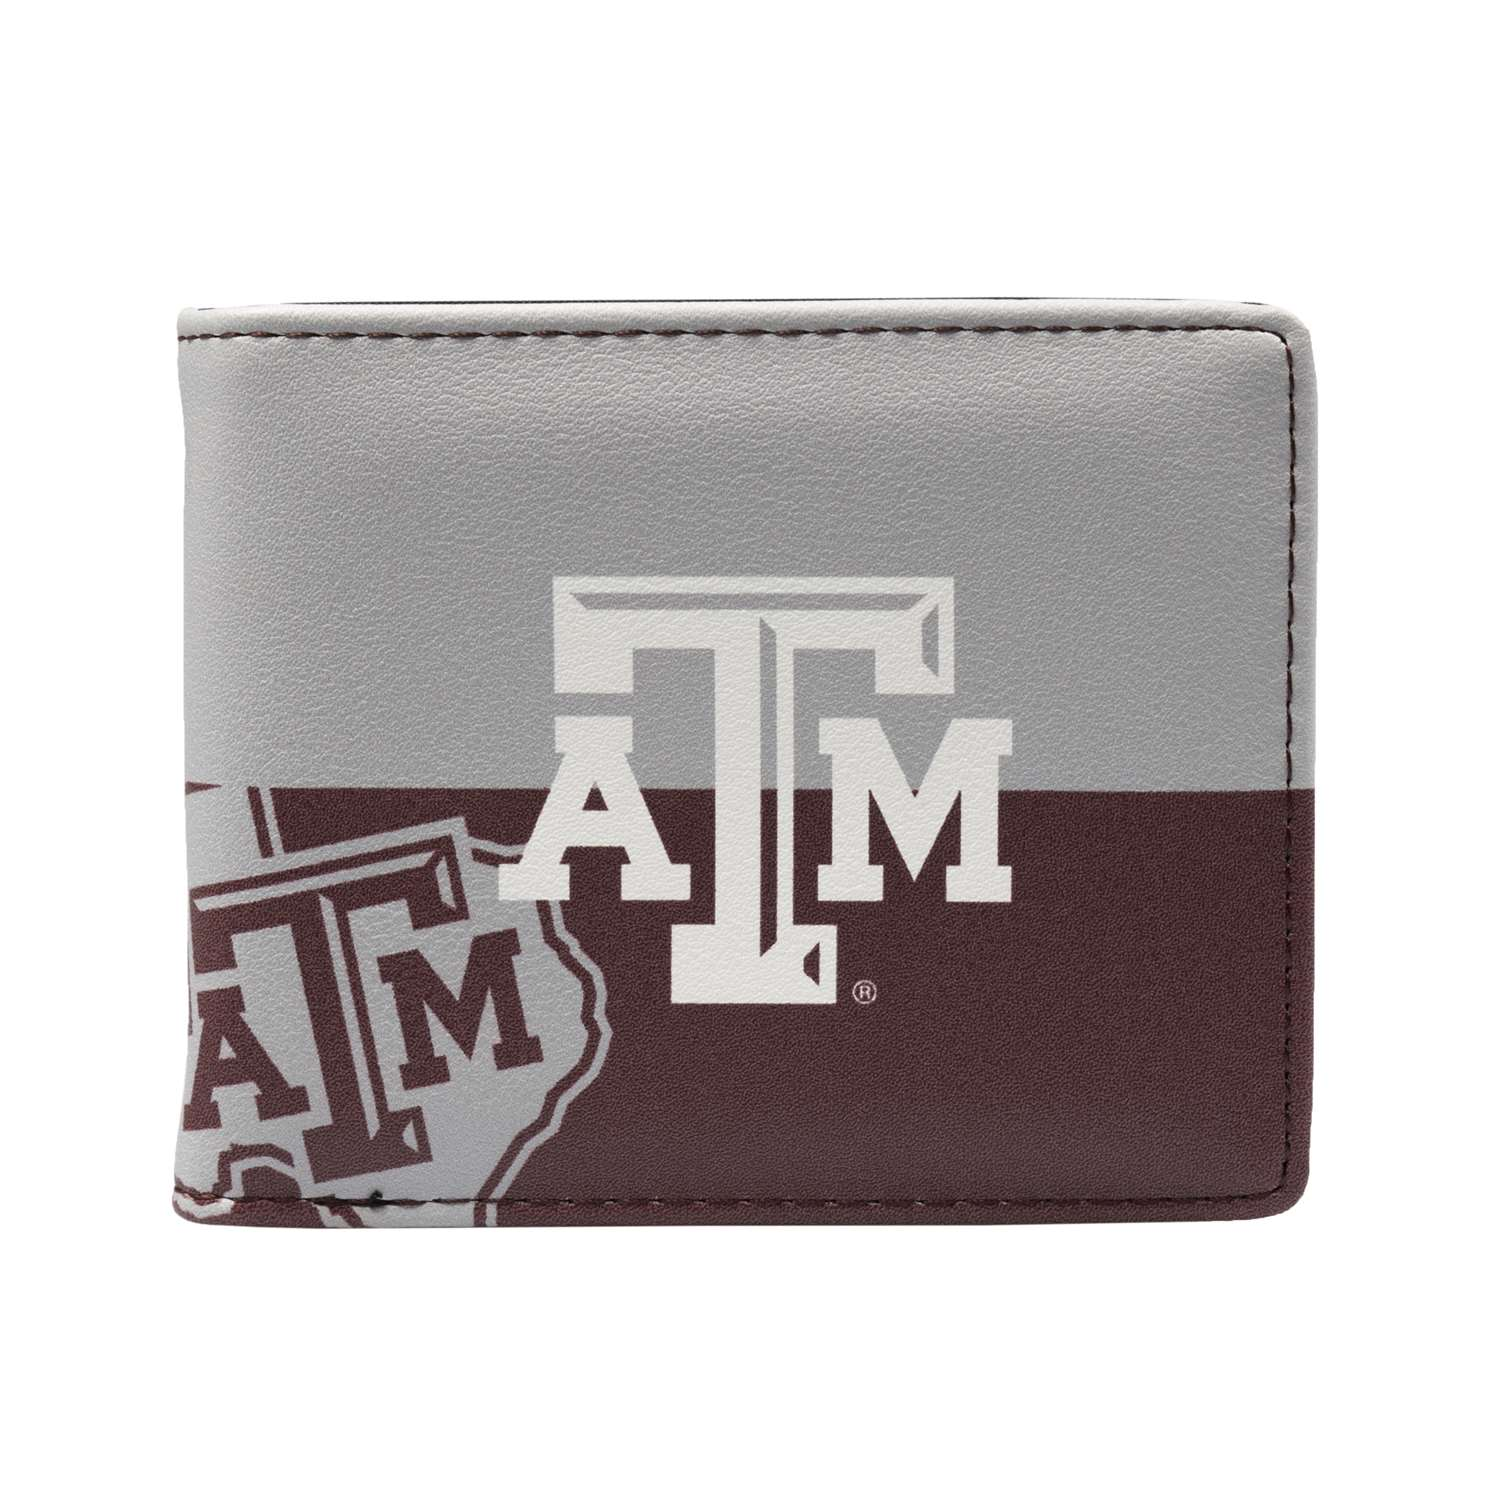 Ncaa College Texas Wesleyan University Txwes Rams Pro Binders - 100903-txam - Texas A & M University Bi-fold Wallet 100903-TXAM